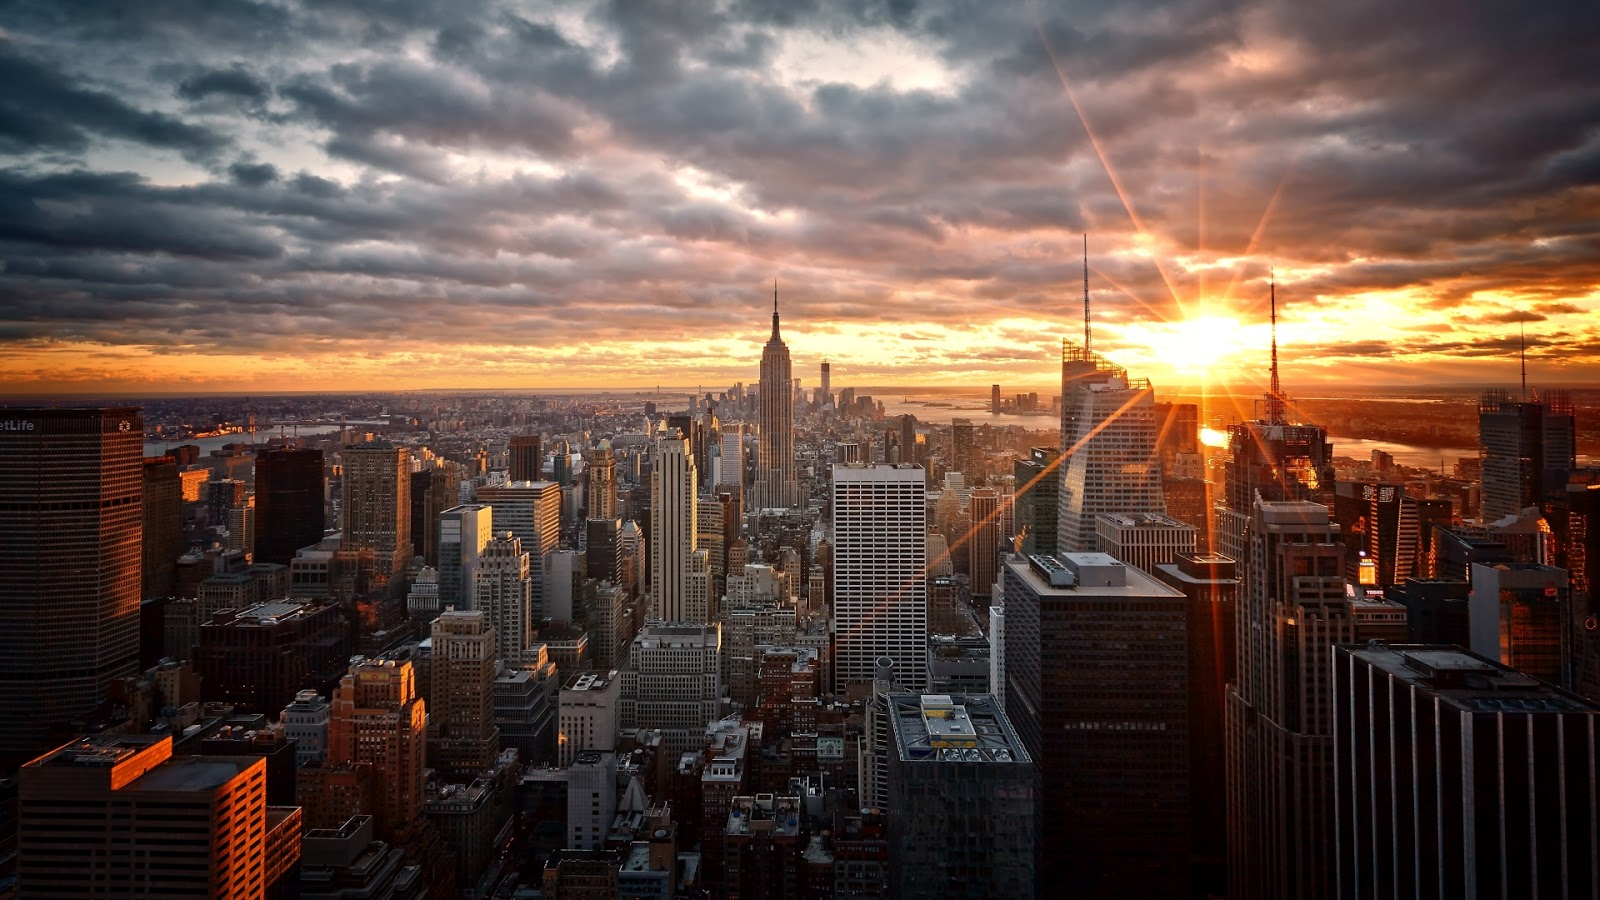 Desktop HD Wallpapers Of Empire State Building 1920x1080 1600x900